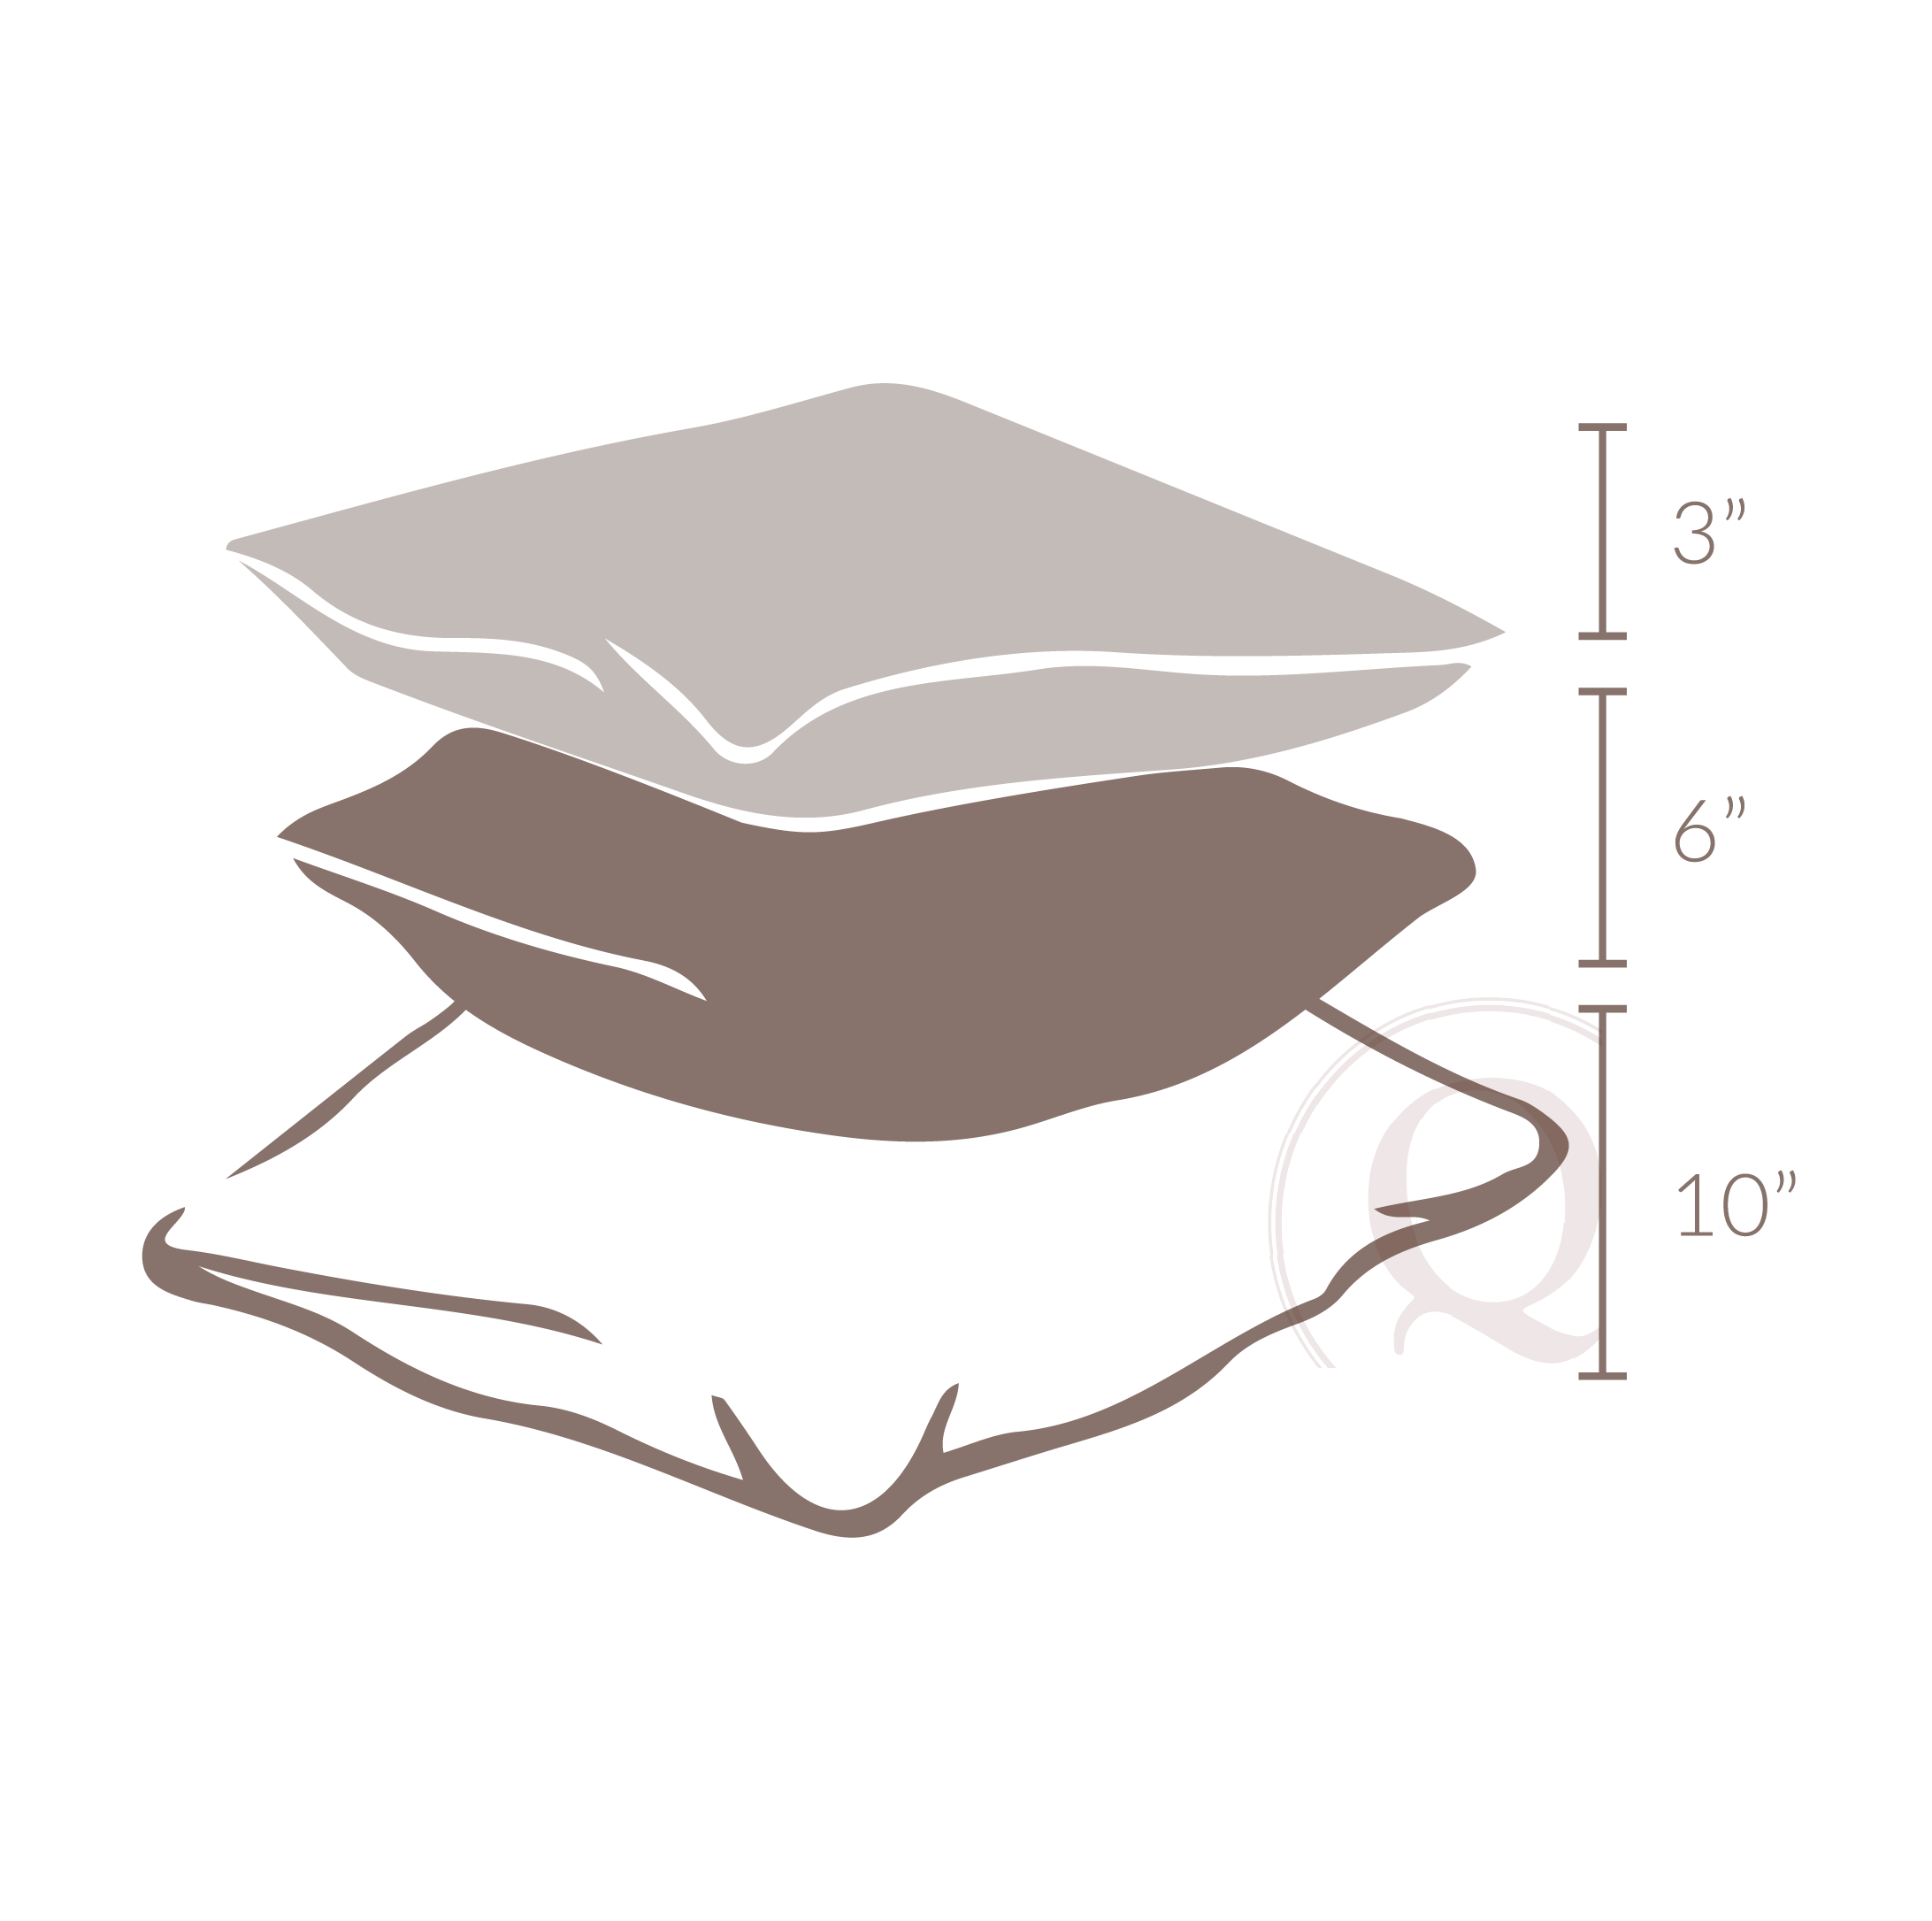 fullness - All pillows with blown fill inserts come filled to a standard level based upon dimension and weight. We do offer the option to have pillows over or under filled as desired. In this case a pillow's thickness is measured from the exact center.